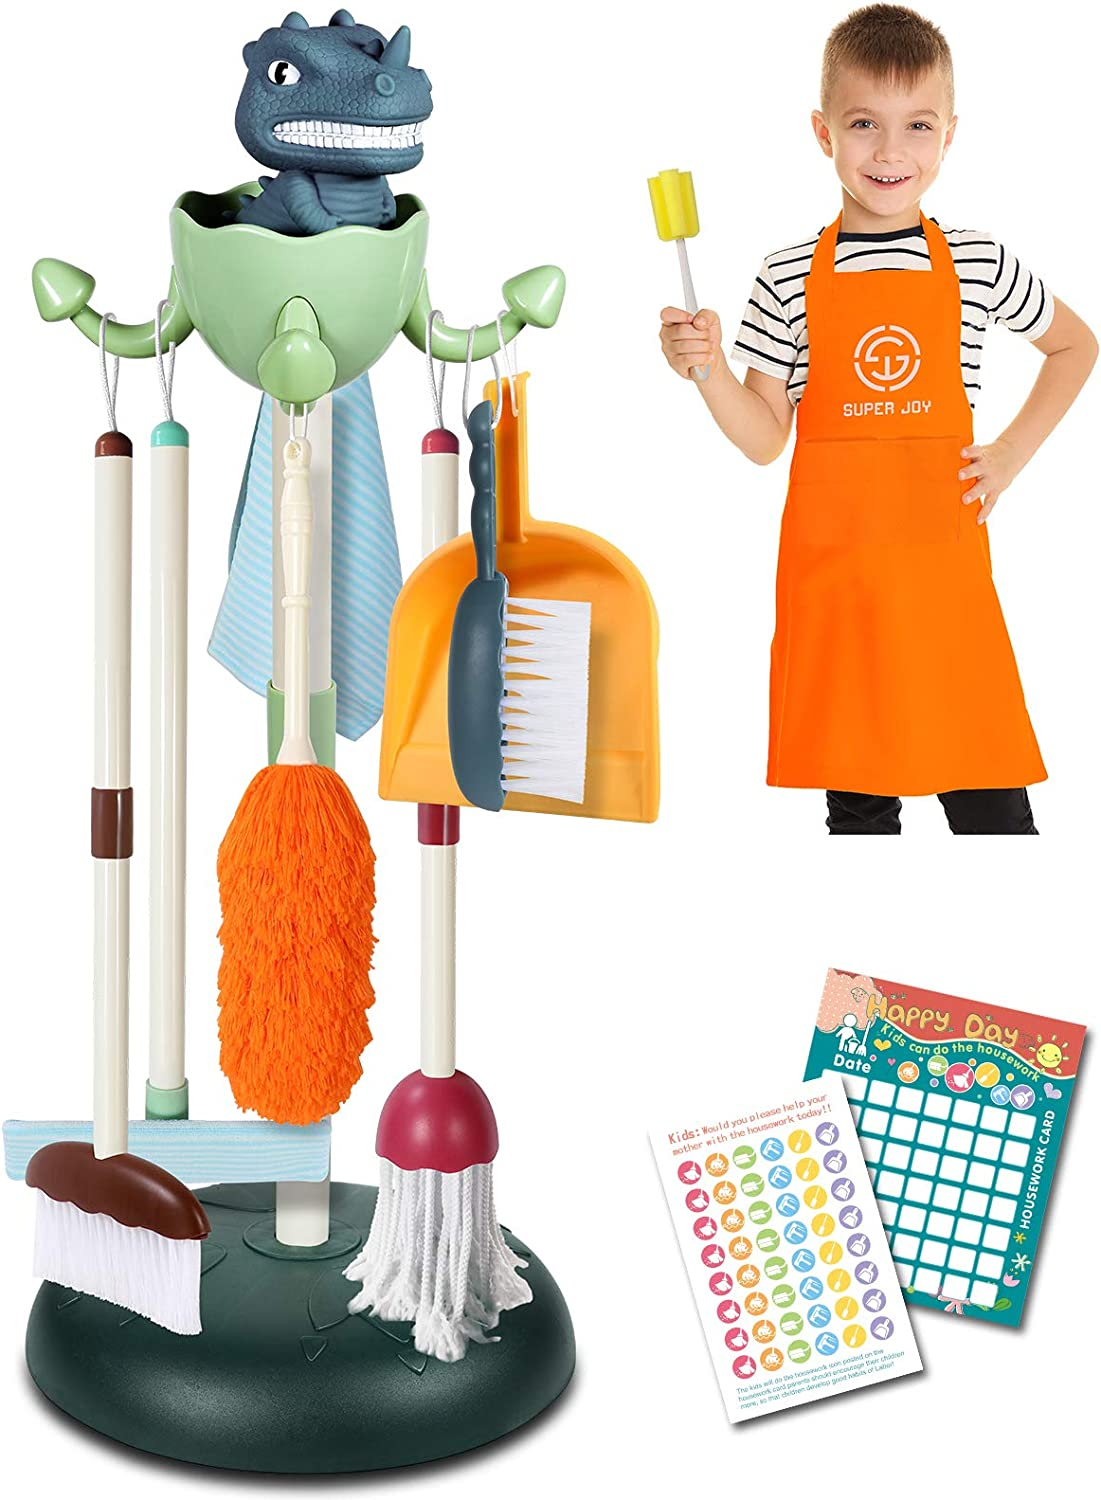 Kids Dinosaur Cleaning Set Toys 10PCS - Toddler Detachable Kid-Sized Housekeeping Pretend Play Stuff Include Mop,Broom,Dustpan,Brush,Duster,Cup Brush,Dish Cloth,Children's Apron,Housework Cards